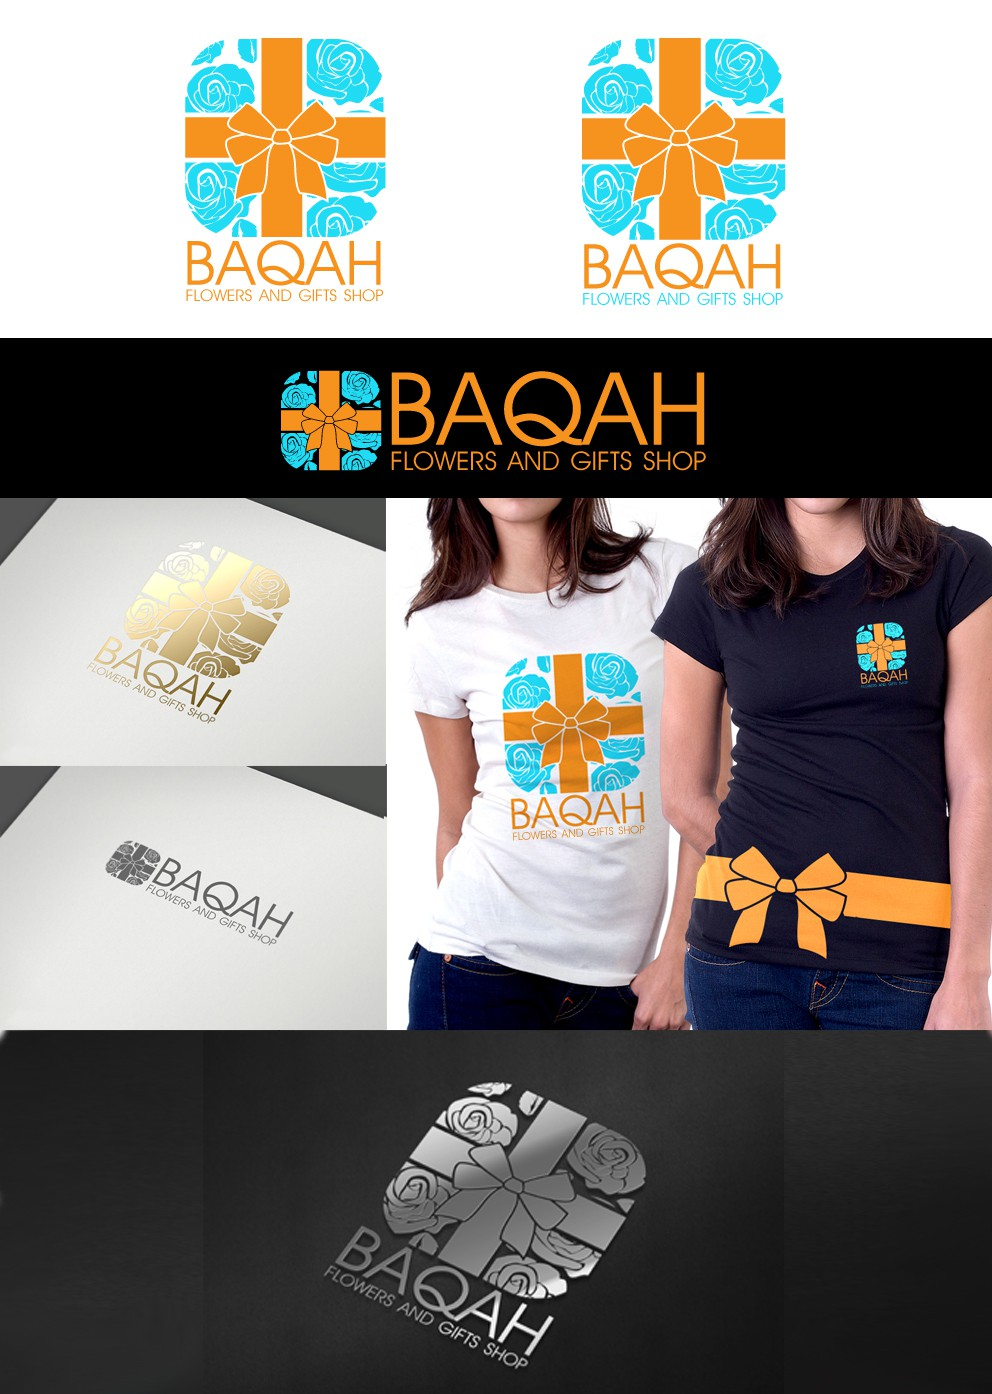 New logo wanted for Baqah